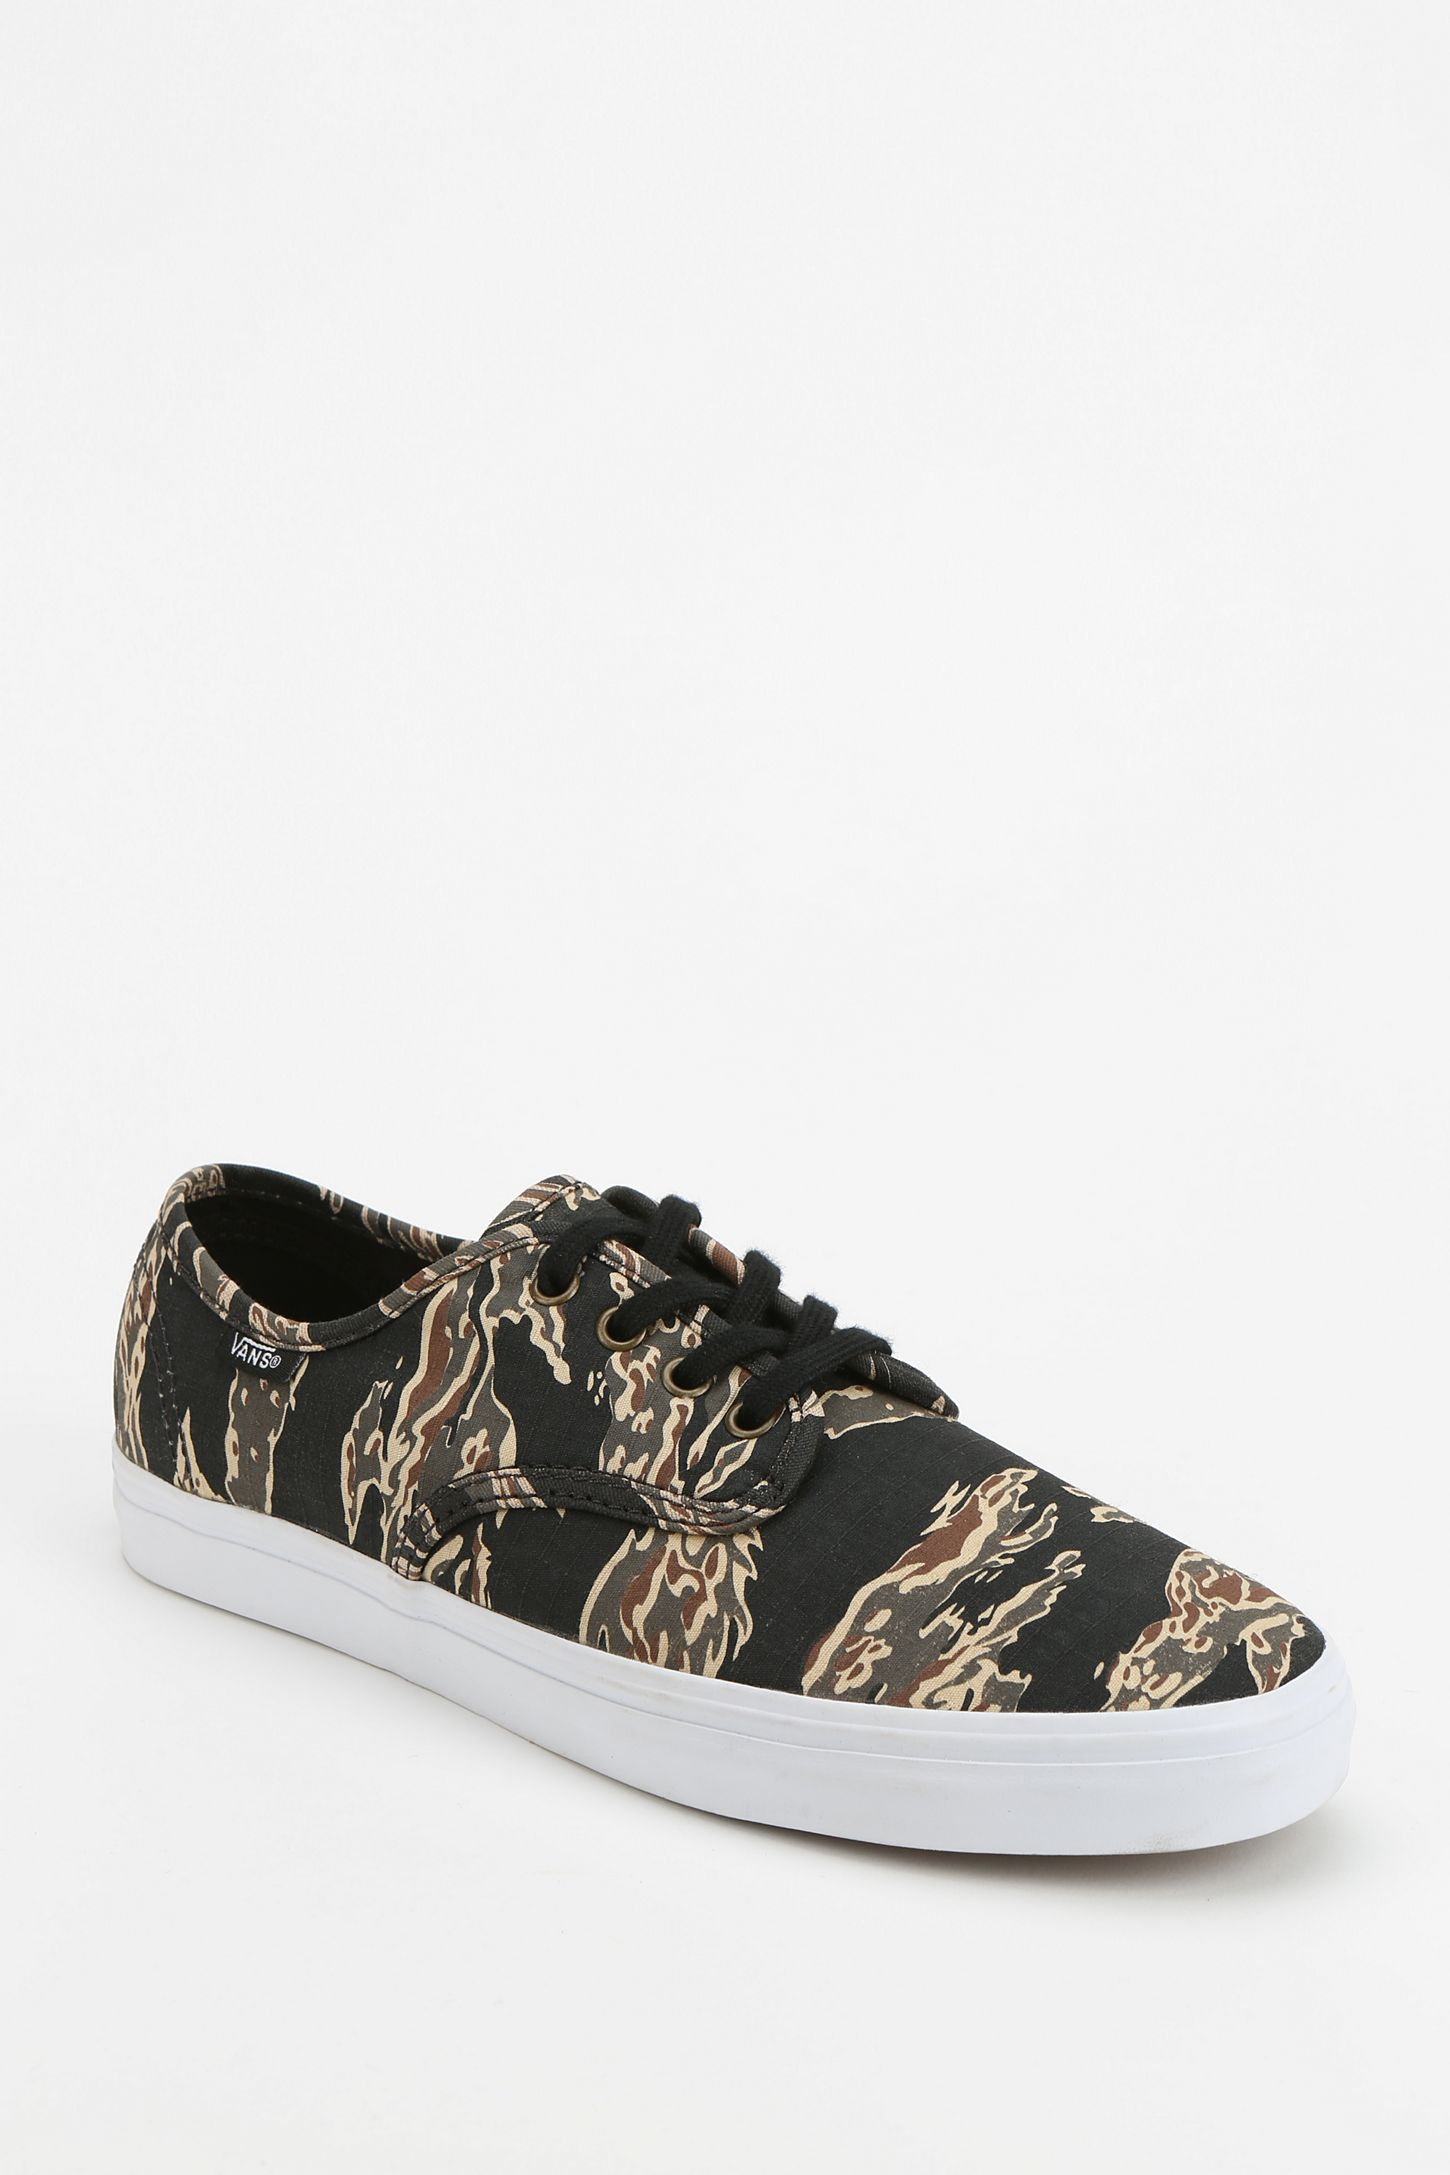 Vans Madero Tiger Camo Women s Low-Top Sneaker  25d5b94e88